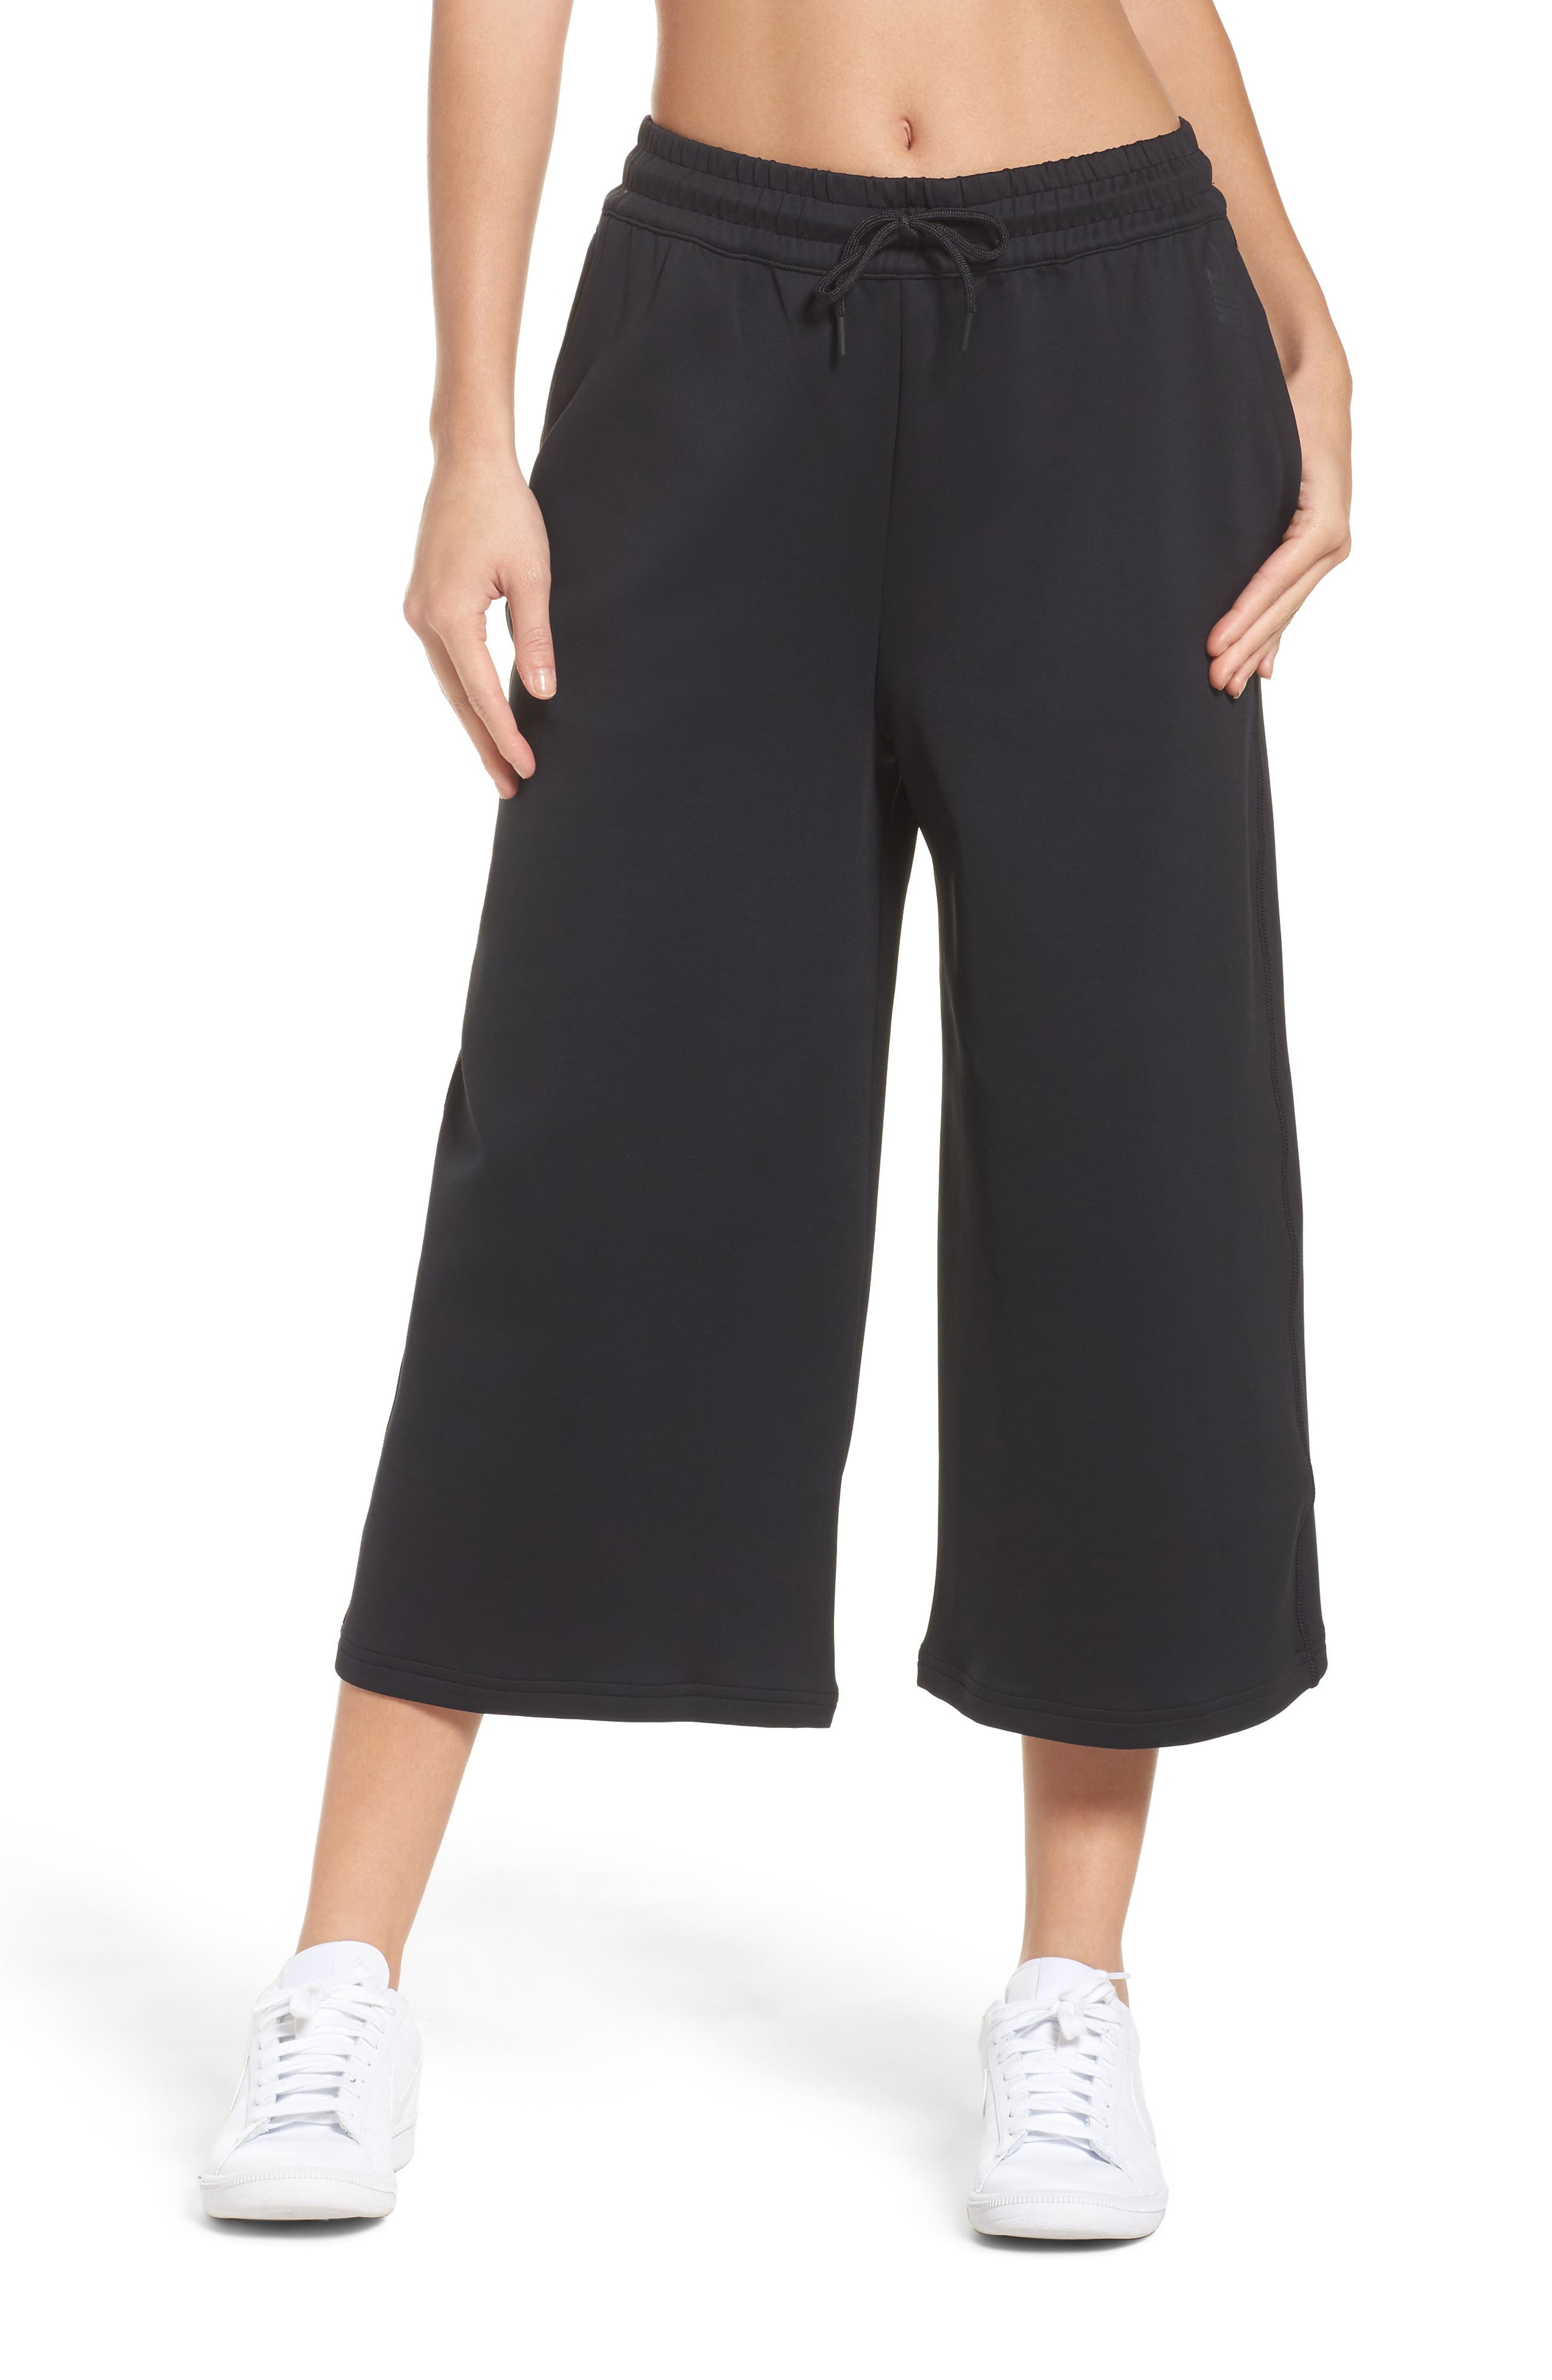 Alternate Image 1 Selected - Nike Essentials Culottes